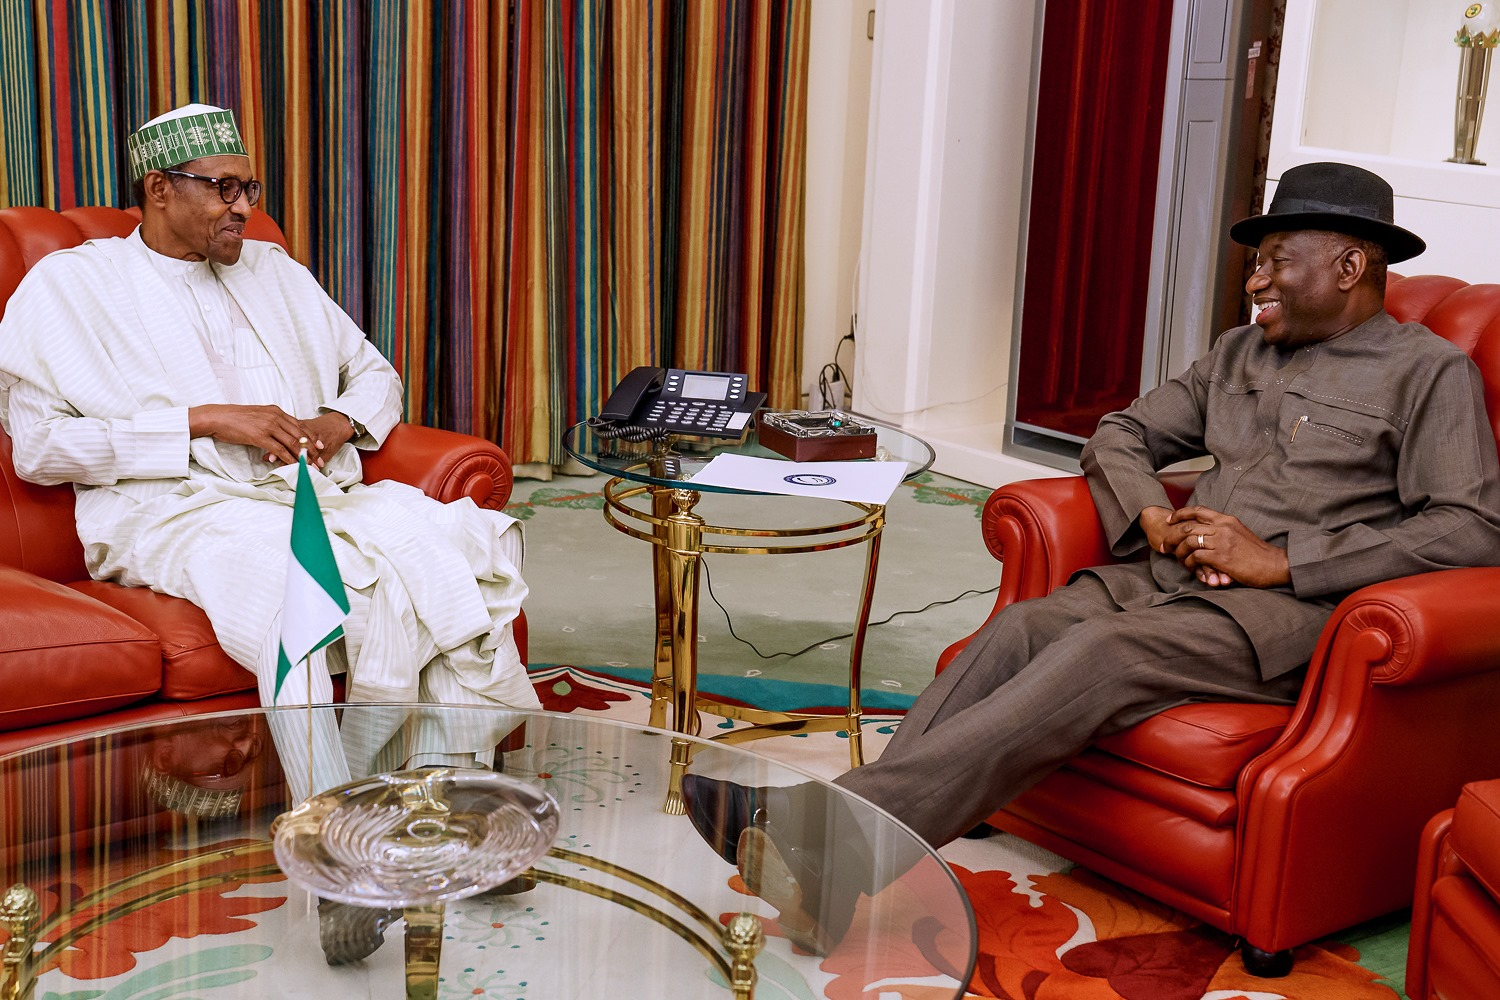 President Muhammadu Buhari received in audience Former President Goodluck Jonathan at the State House, Abuja on Thursday October 10, 2019